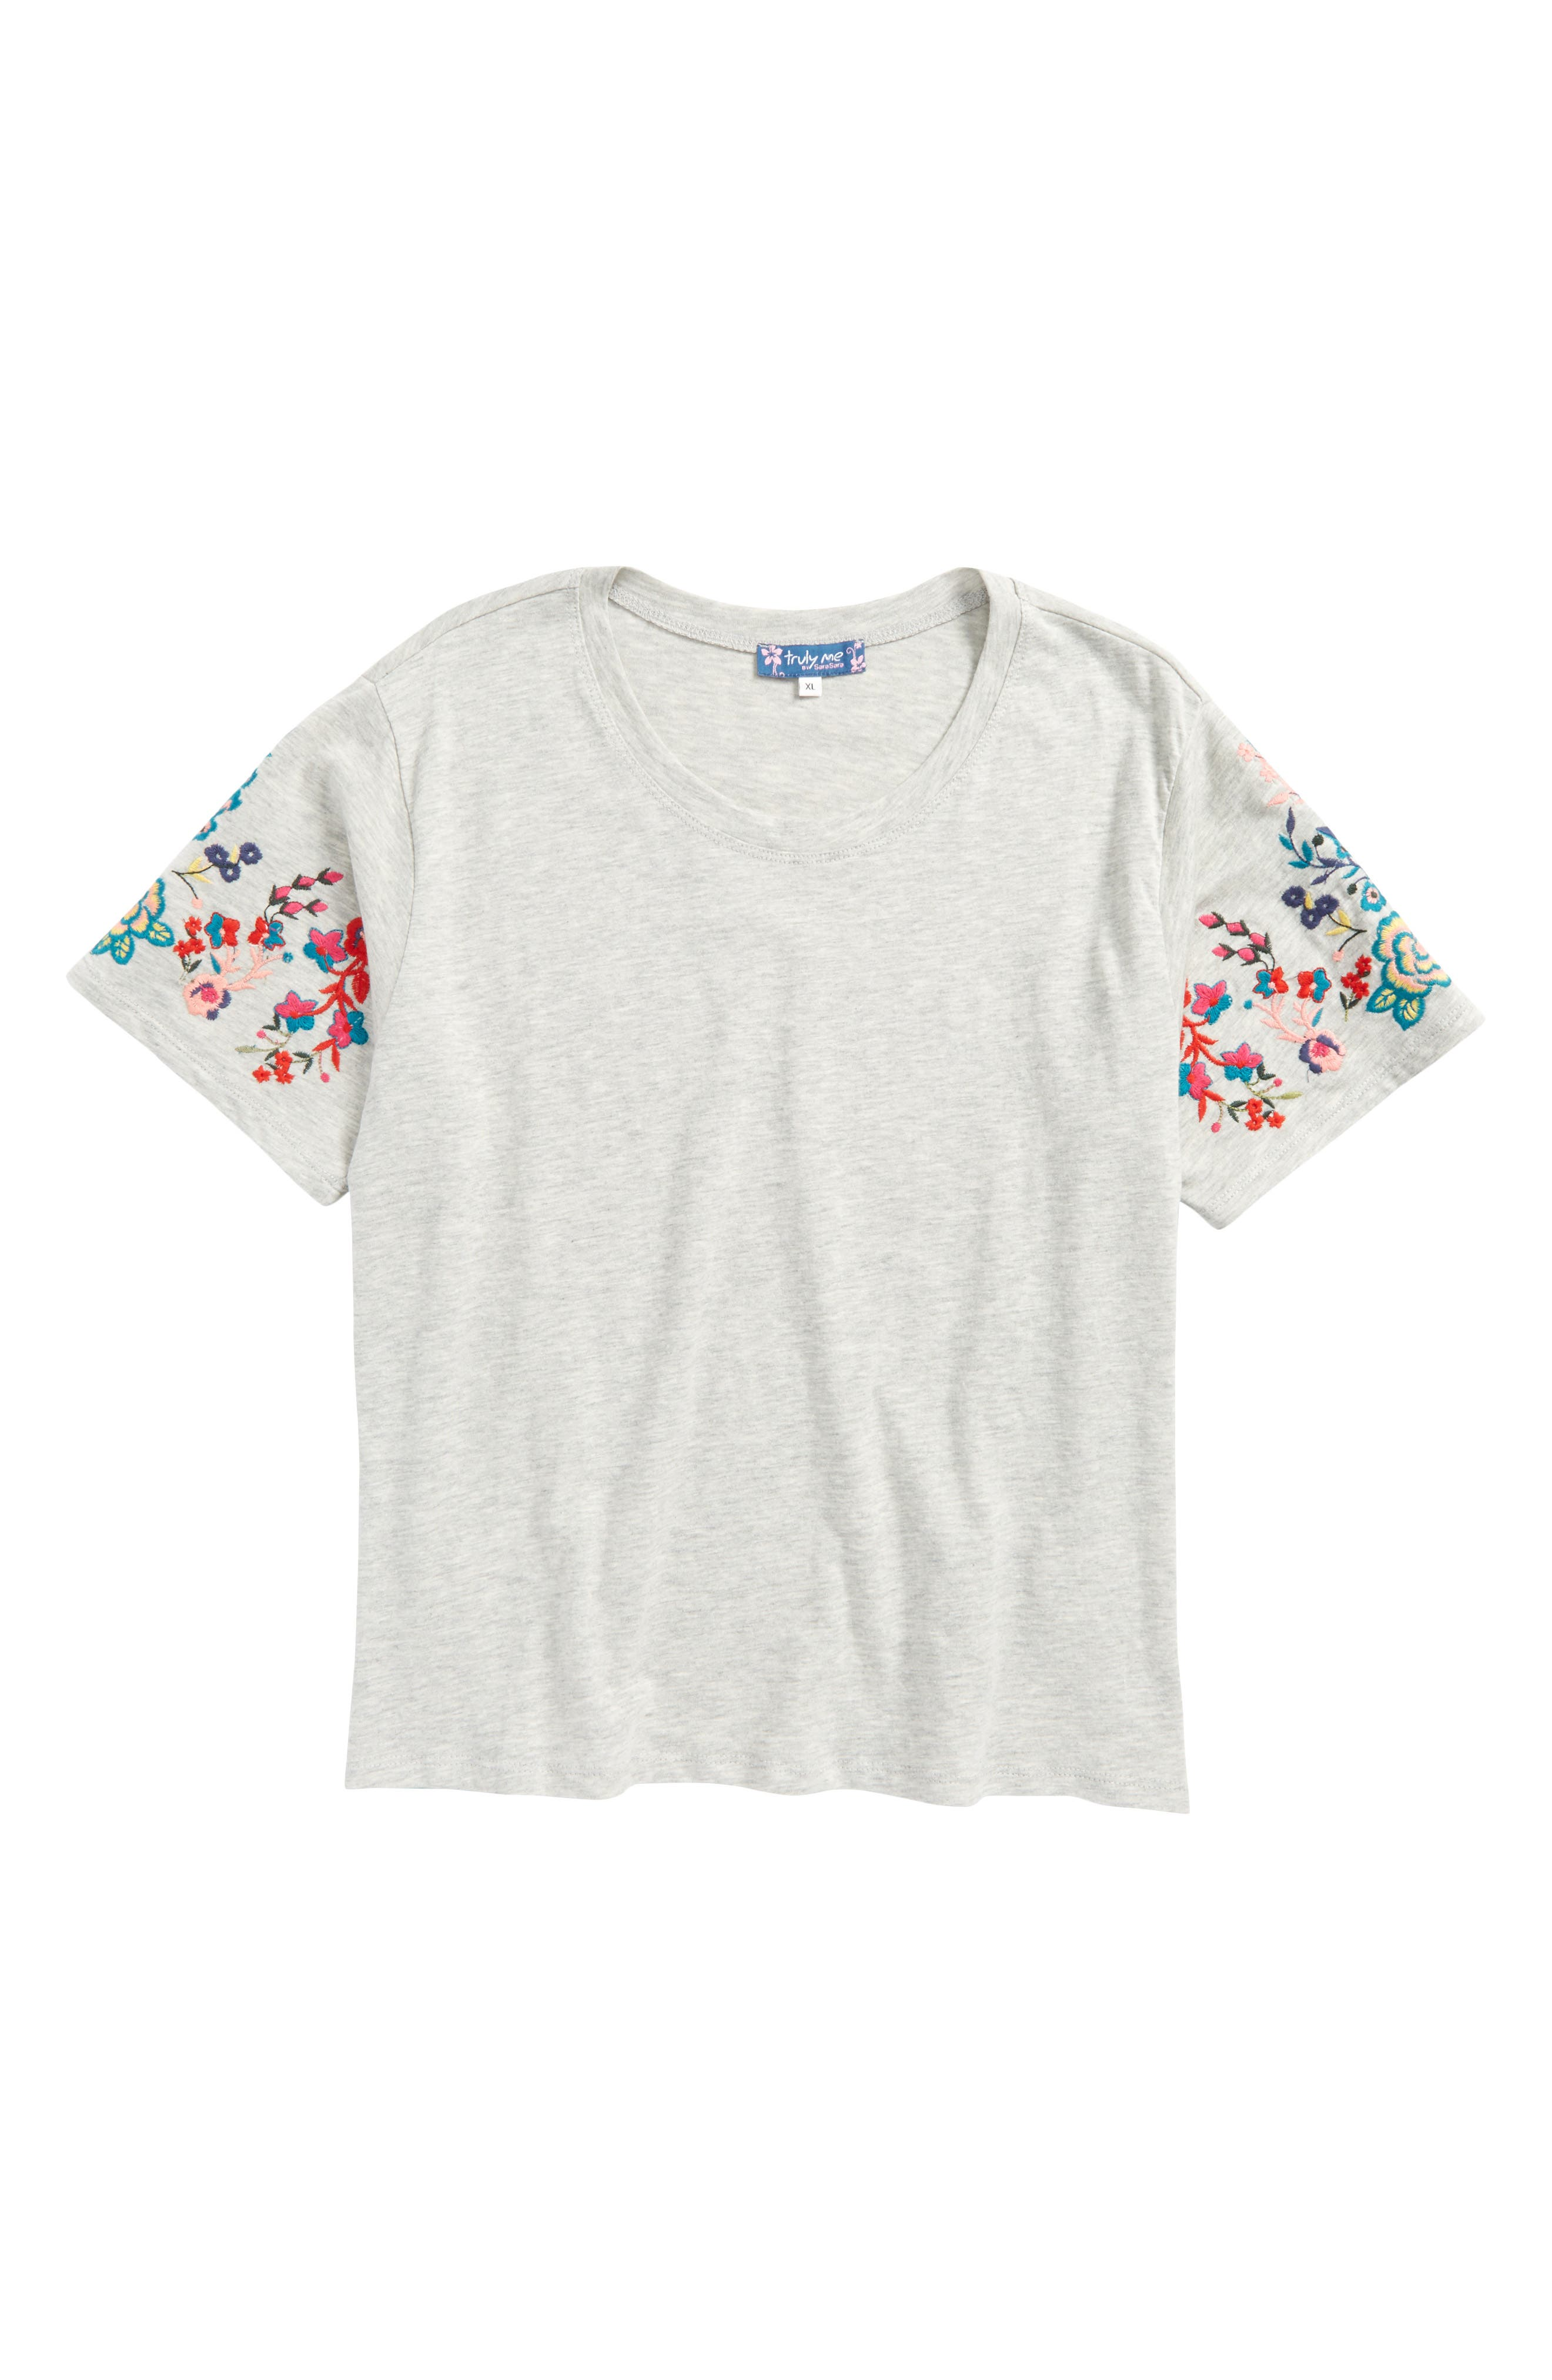 Main Image - Truly Me Embroidered Sleeve Top (Big Girls)